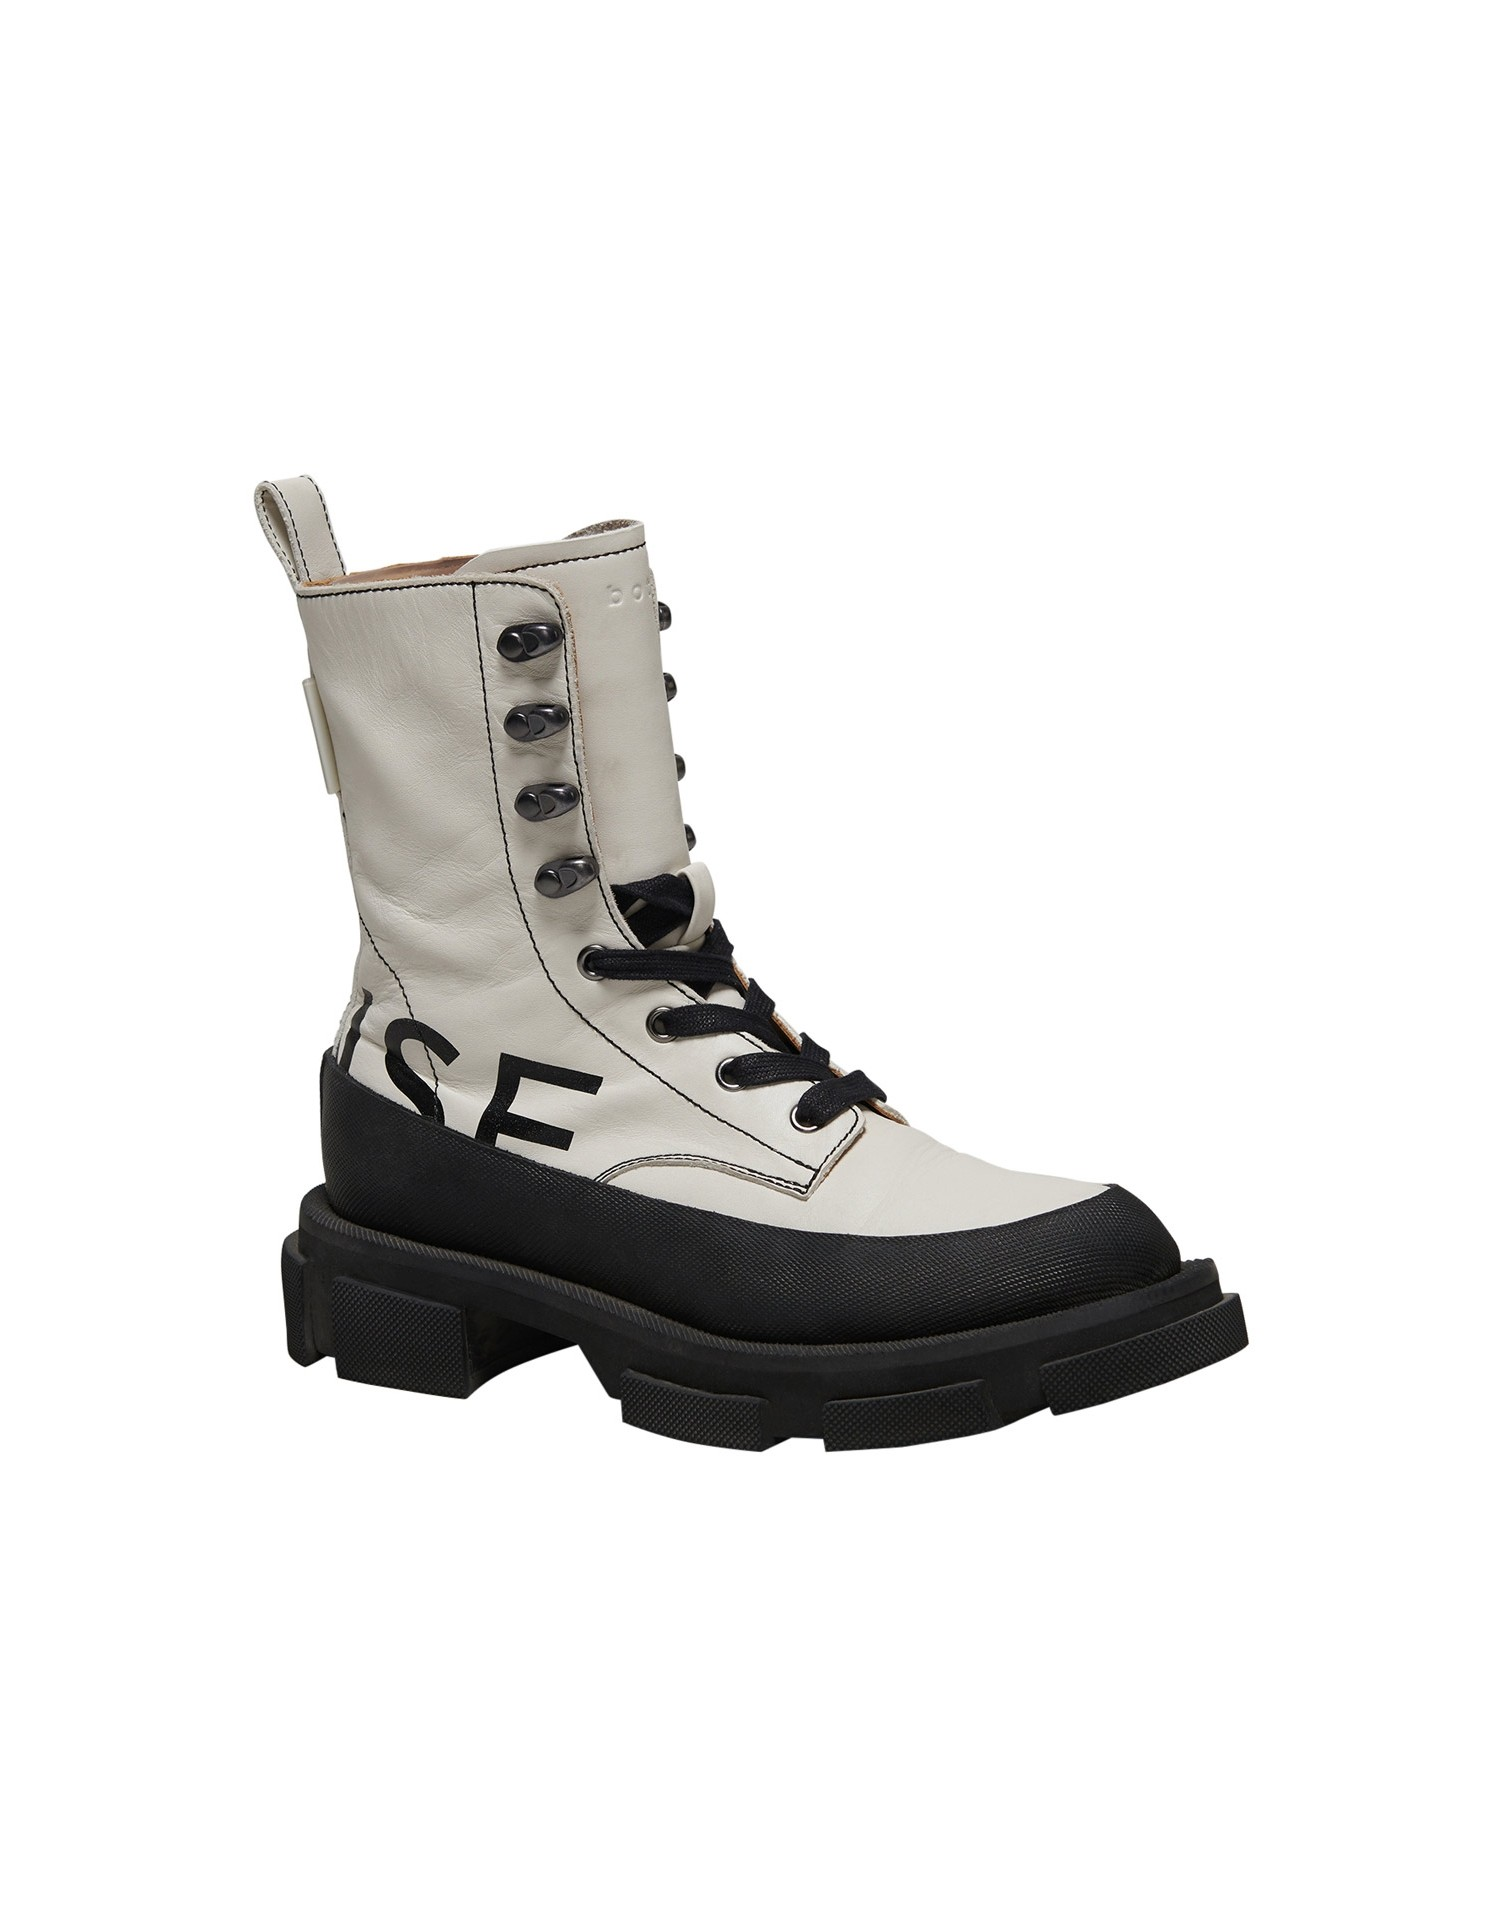 Both x MONSE Gao High Boots in White and Black Right Side Angle View